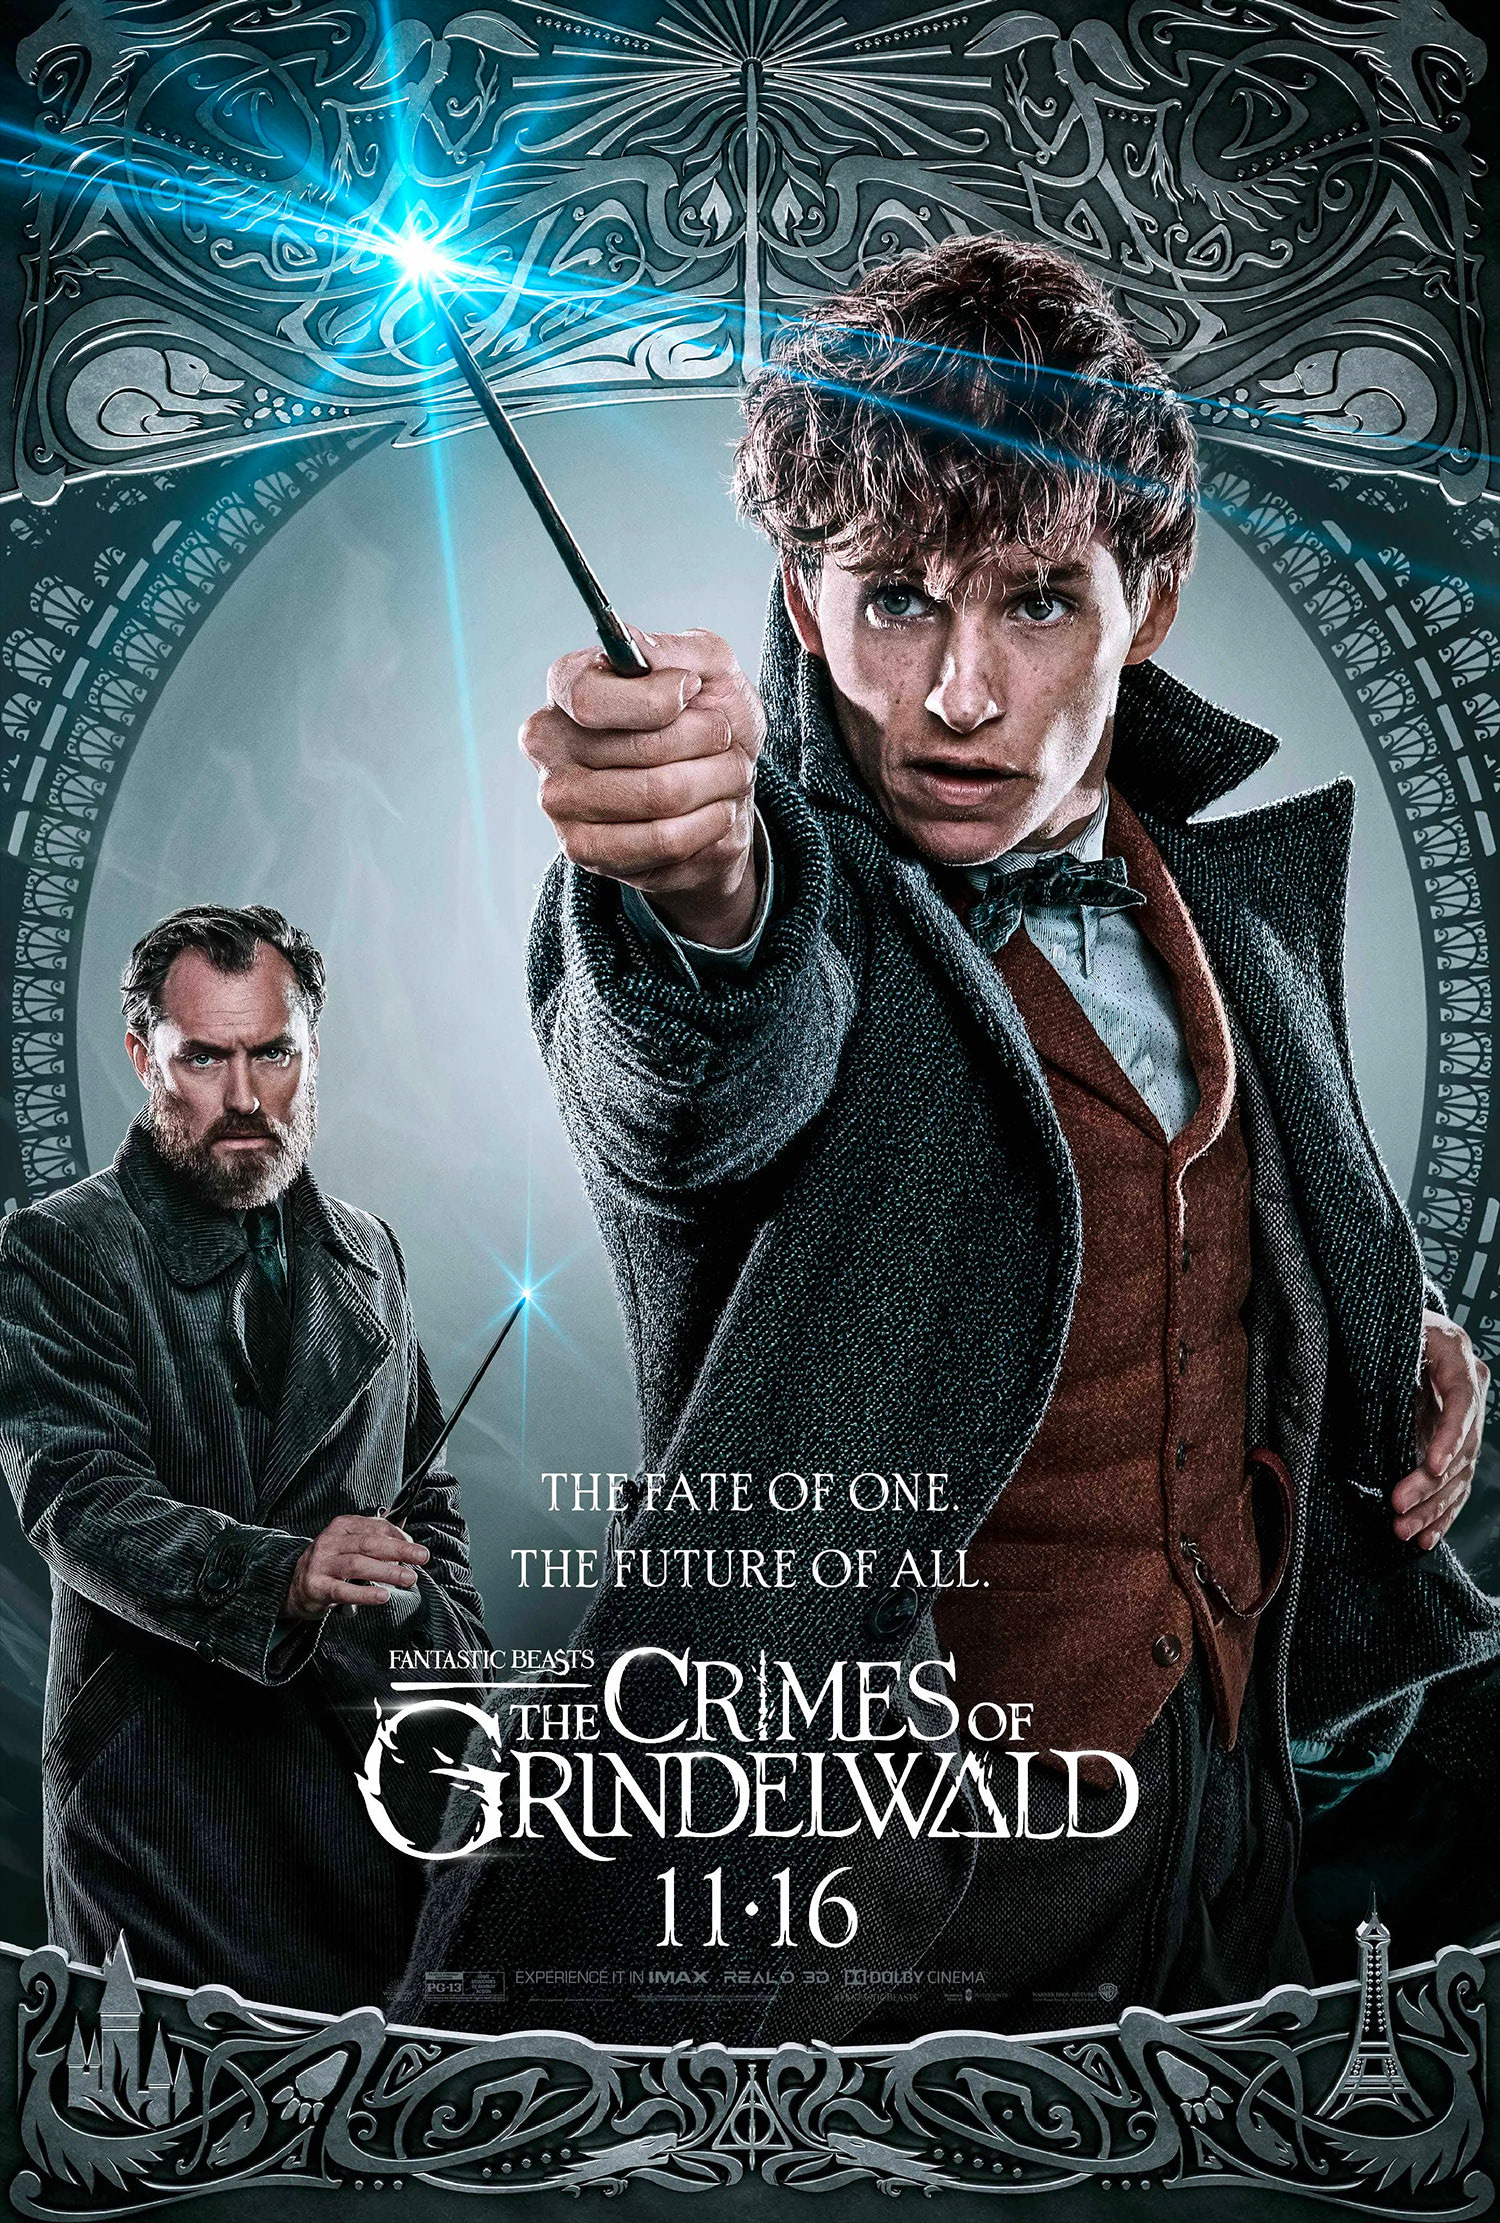 'Crimes of Grindelwald' Newt poster #2